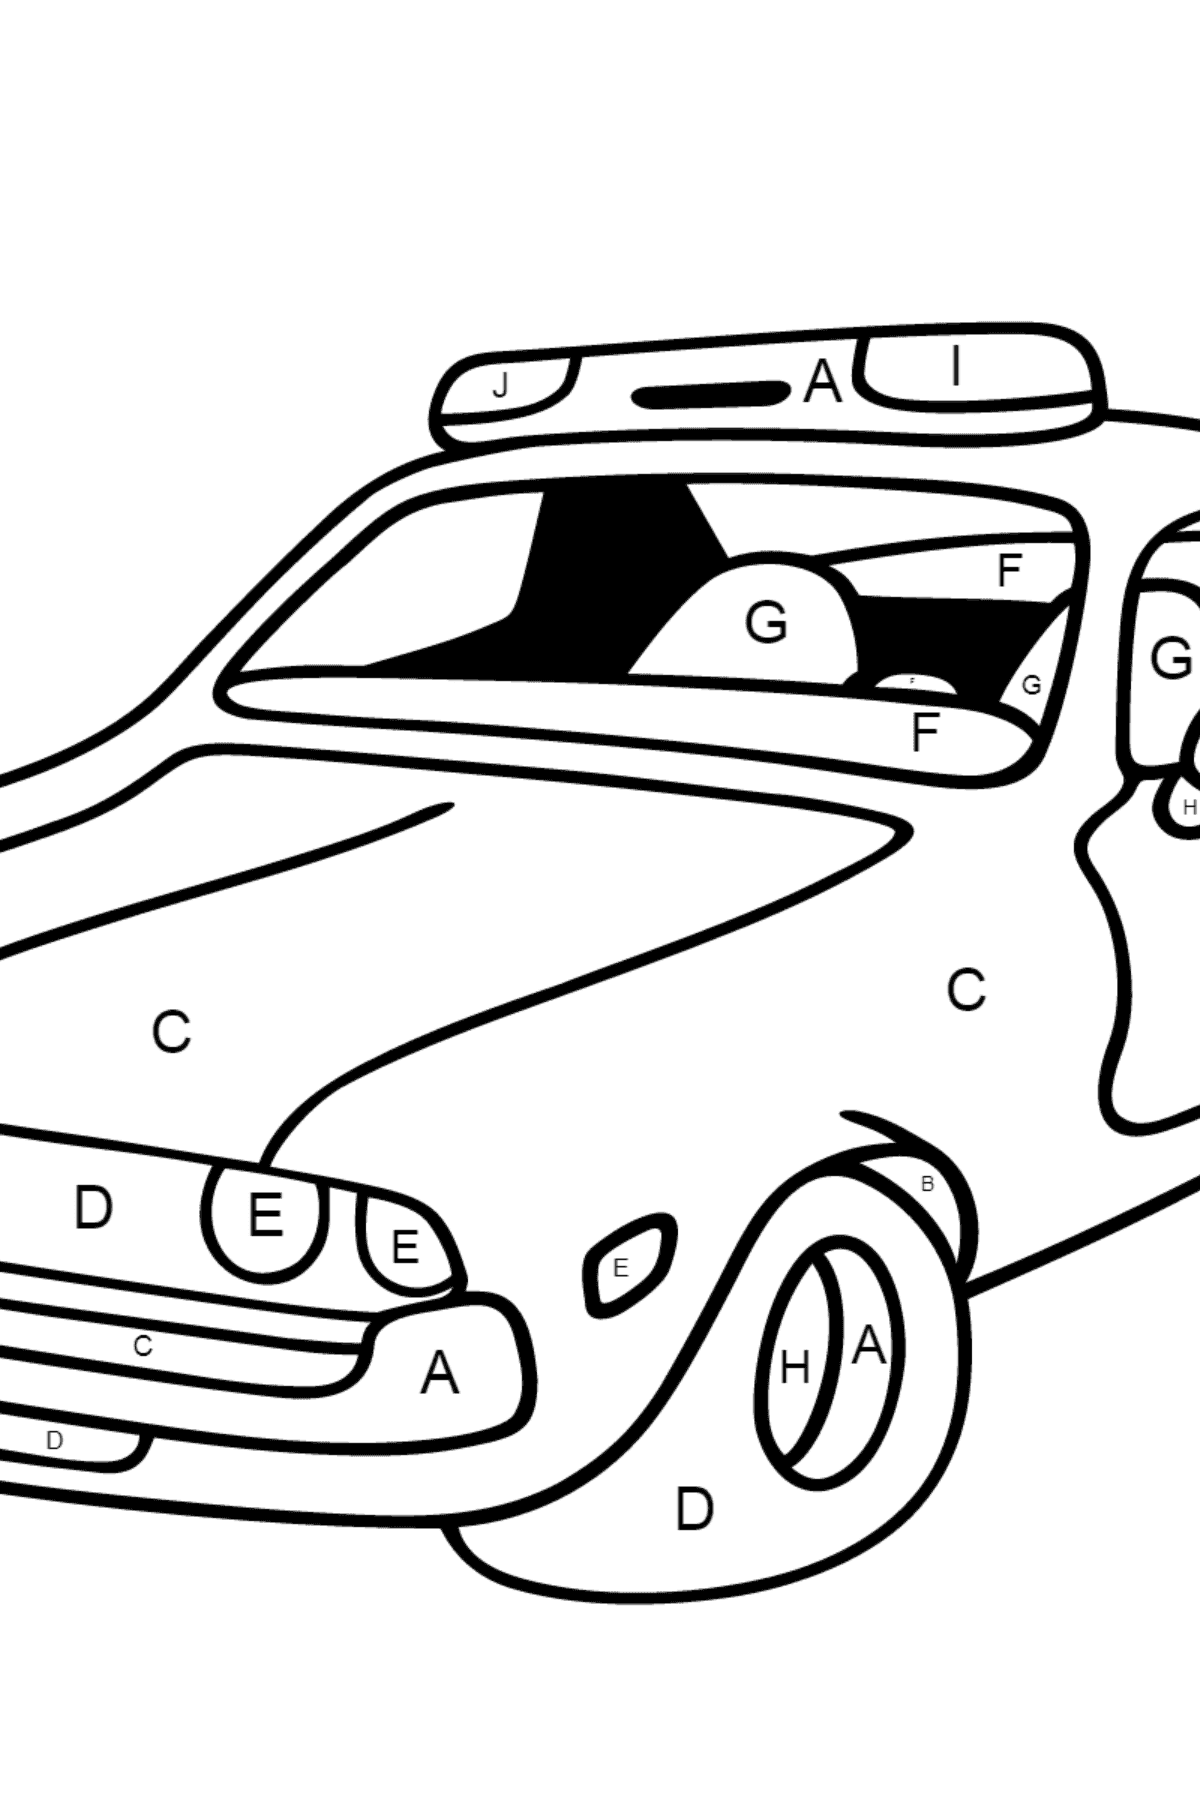 Coloring Page - A Red Police Car for Kids  - Color by Letters